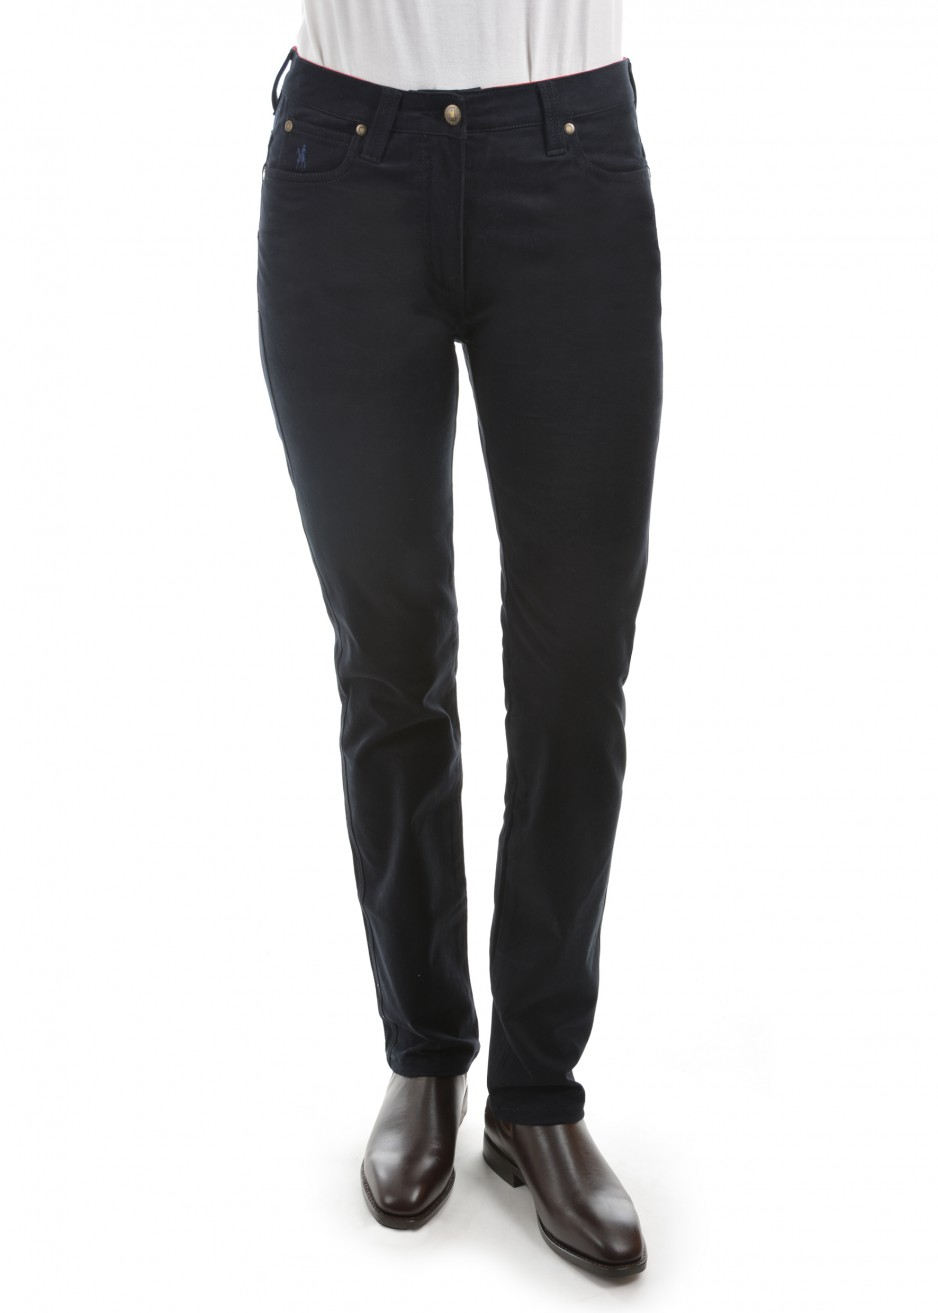 WOMENS STRETCH MOLESKIN WONDER JEAN MID-REG-SLIM 32 LEG